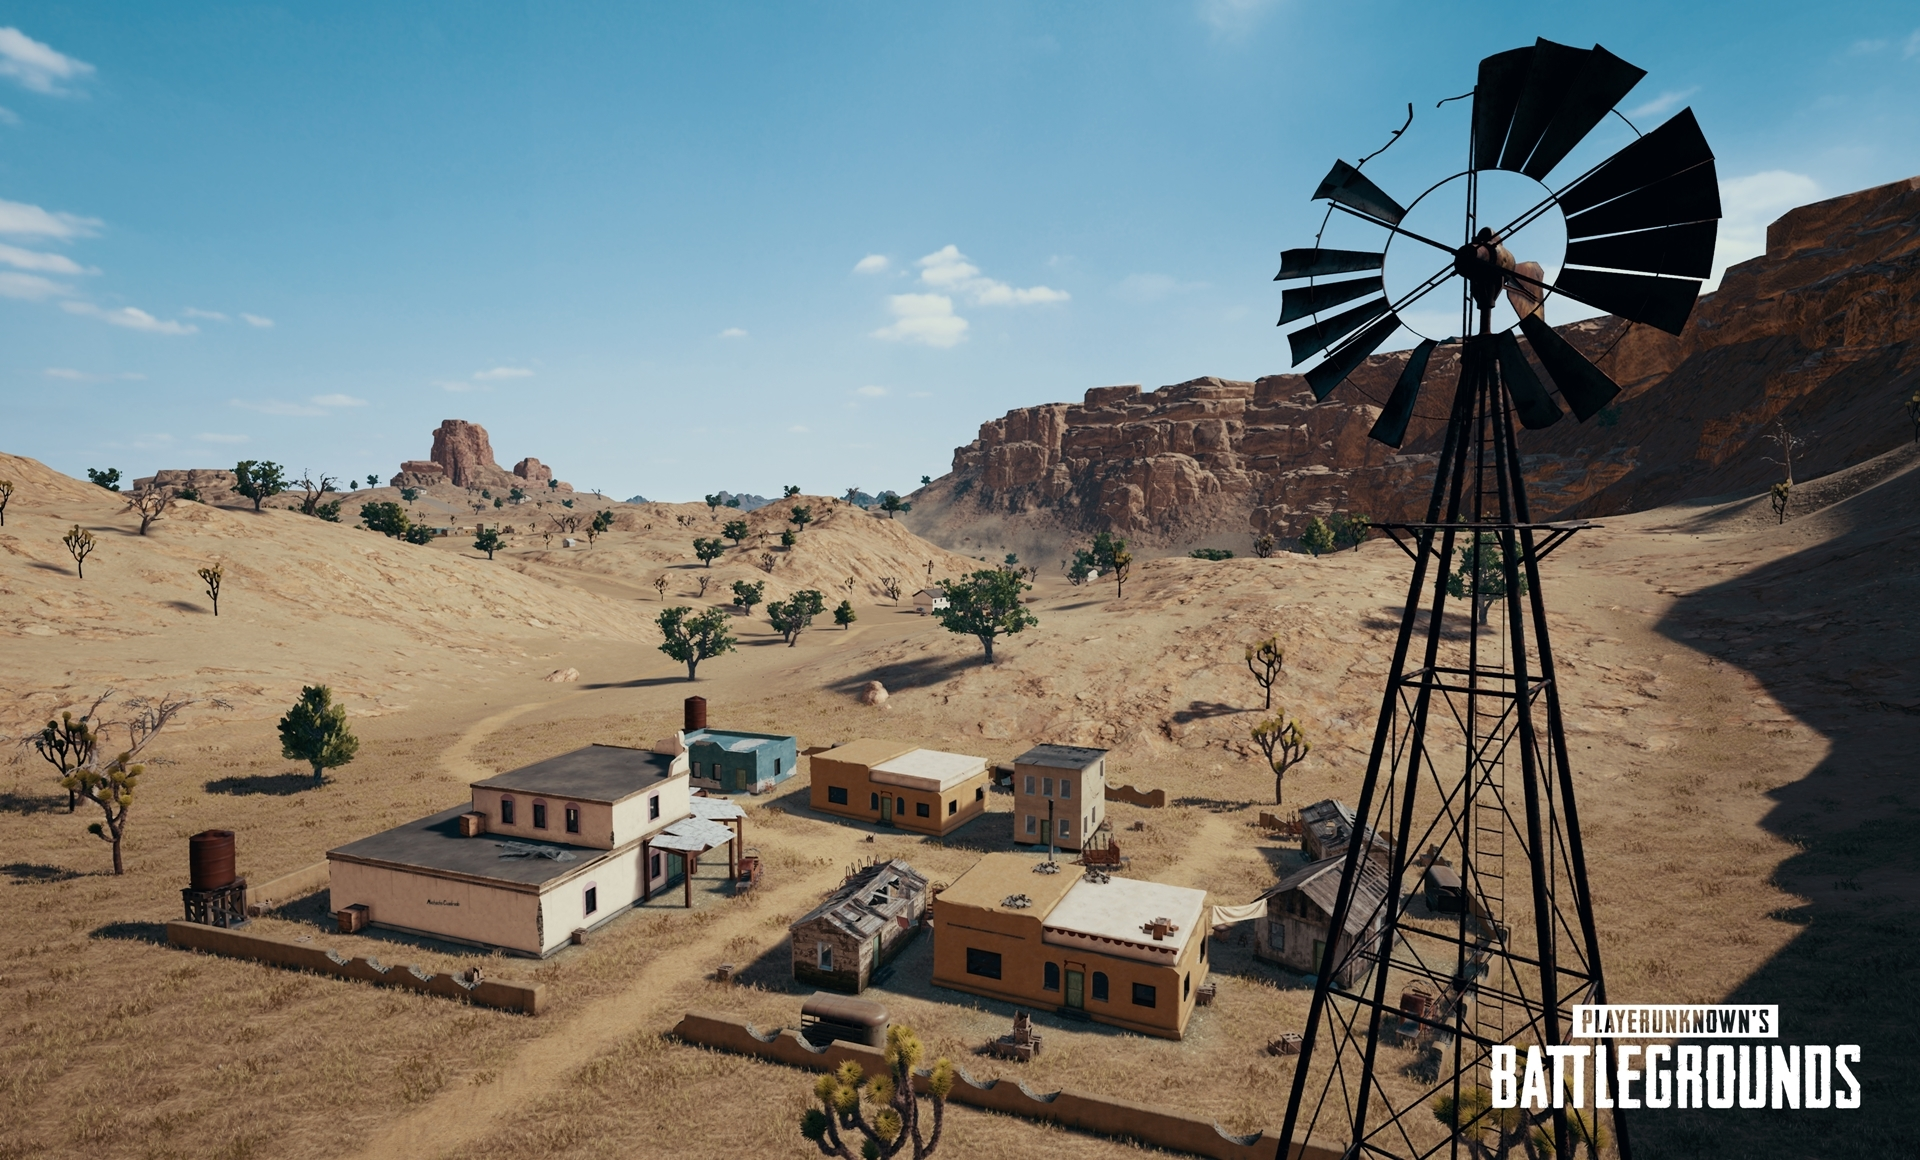 PUBG's Second Map Coming To Xbox One In May